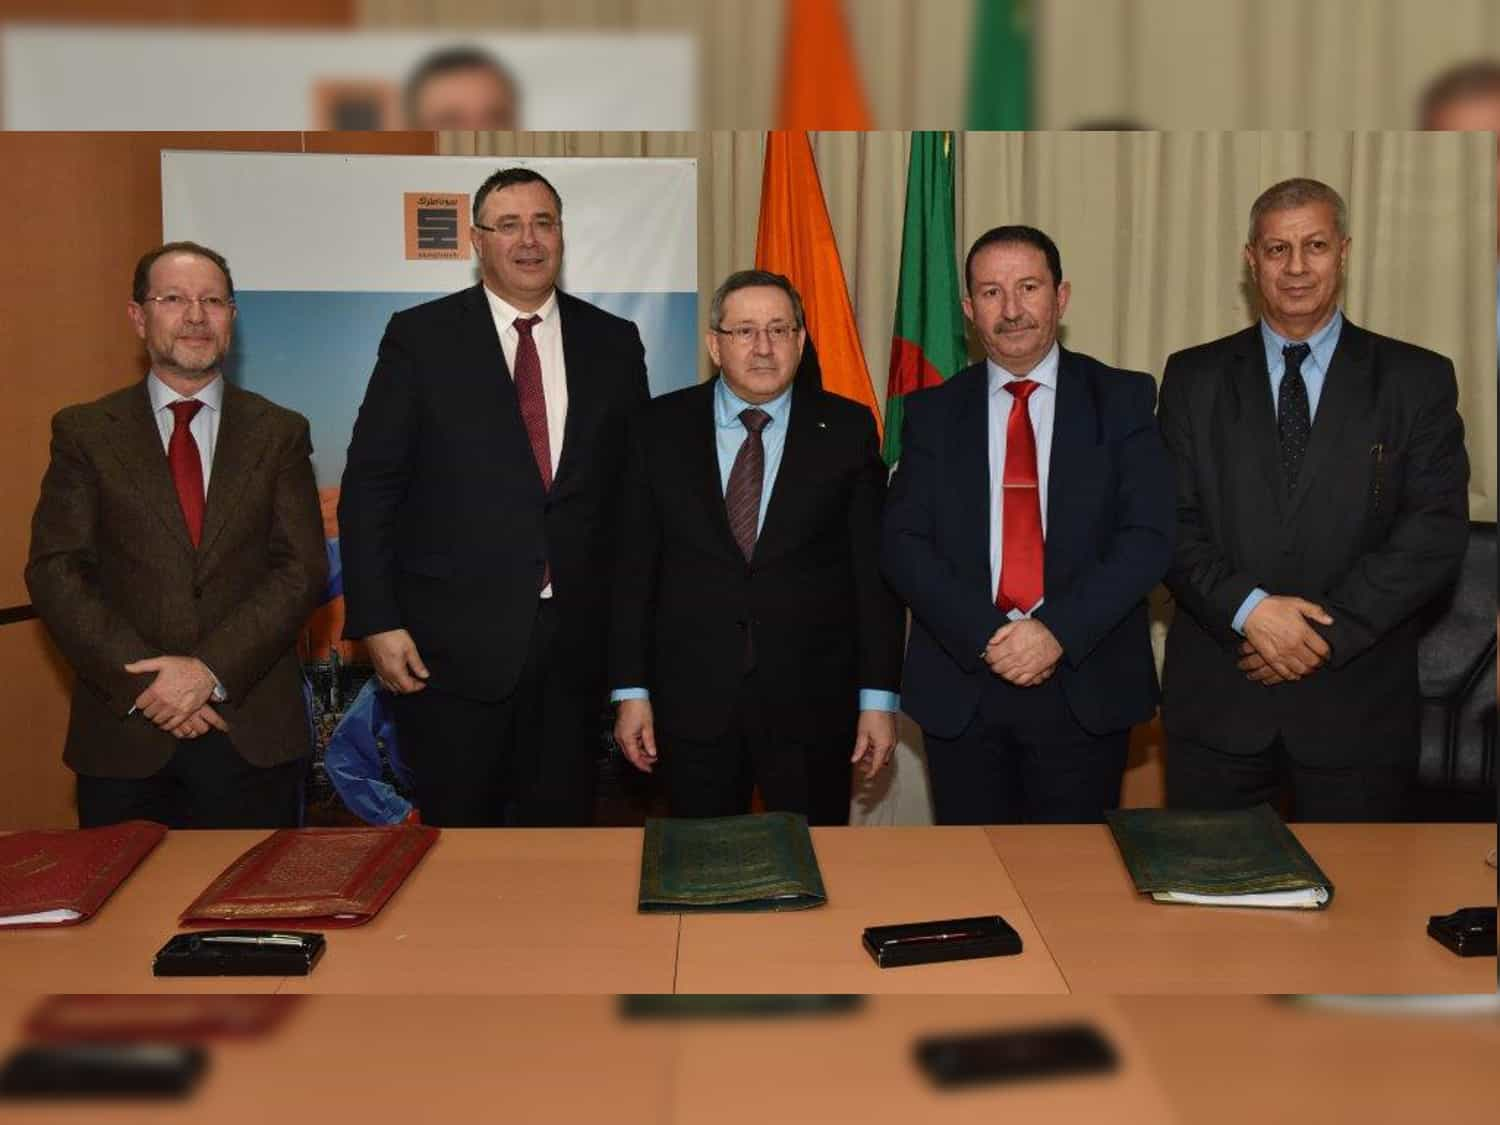 Francisco Claver (Head of Cepsa Operations in Algeria), Abdelmoumen Ould Kaddour, (CEO of Sonatrach), Patrick Pouyanné, (CEO of Total) and Arezki Hocini (Chairman of Alnaft)